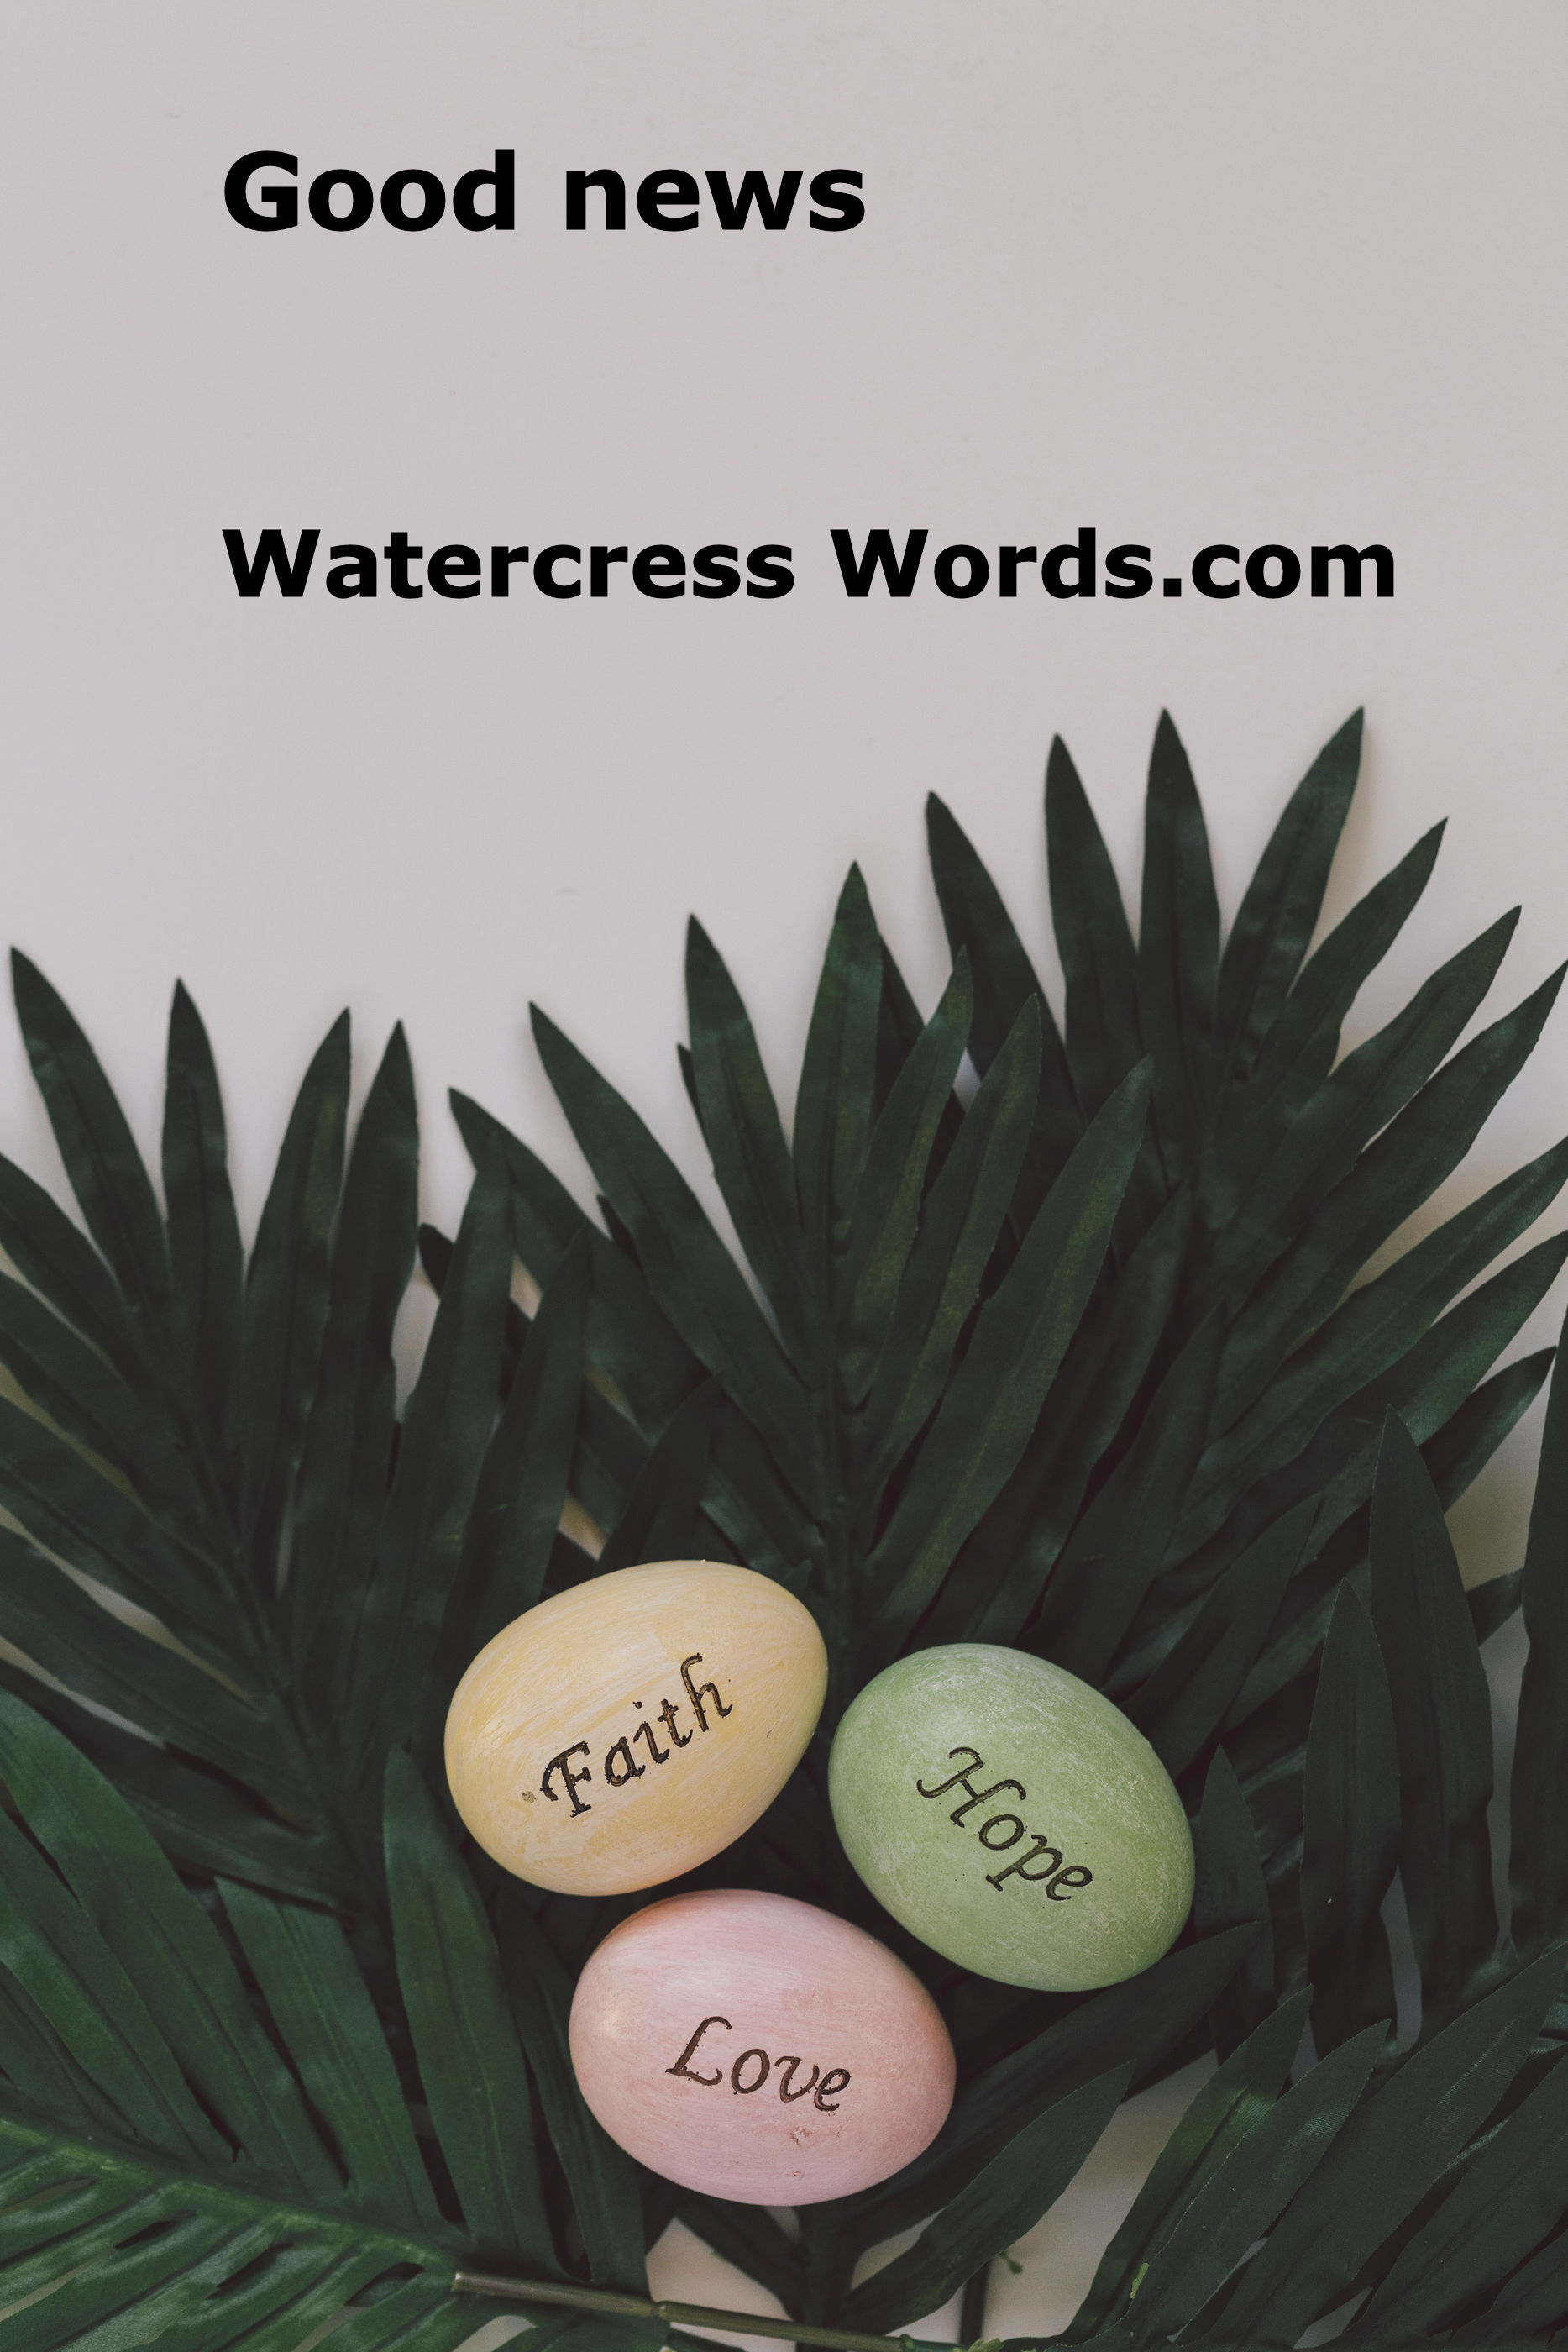 Good news Watercress Words.com